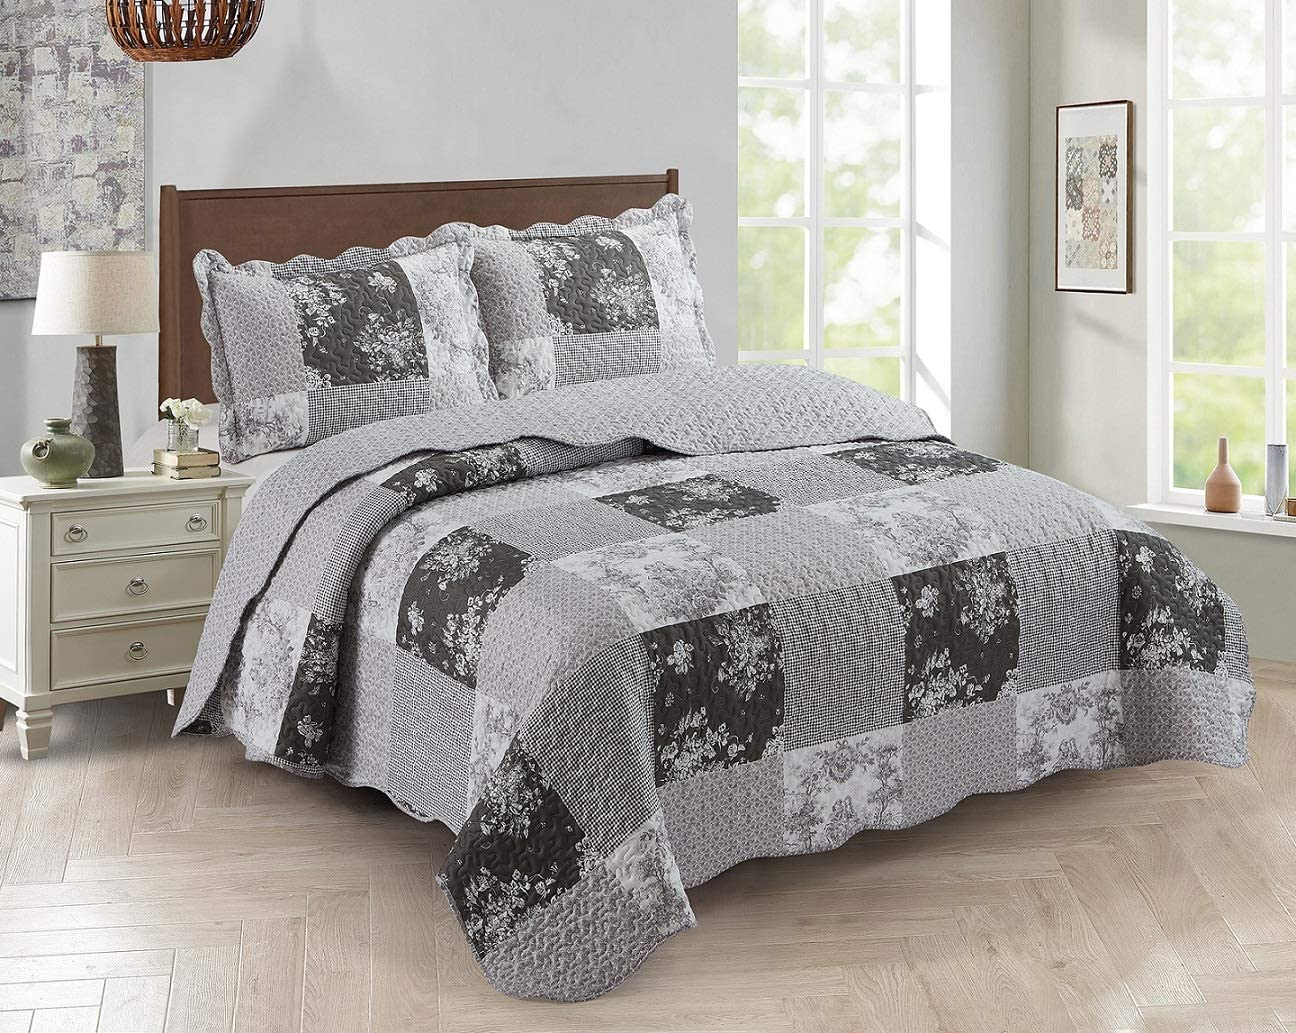 Brilliant Sunshine Country Garden Toile and Floral Patchwork, 3-Piece Quilt Set, Reversible Bedspread, Lightweight Coverlet, All-Season, Full/Queen, Charcoal Gray